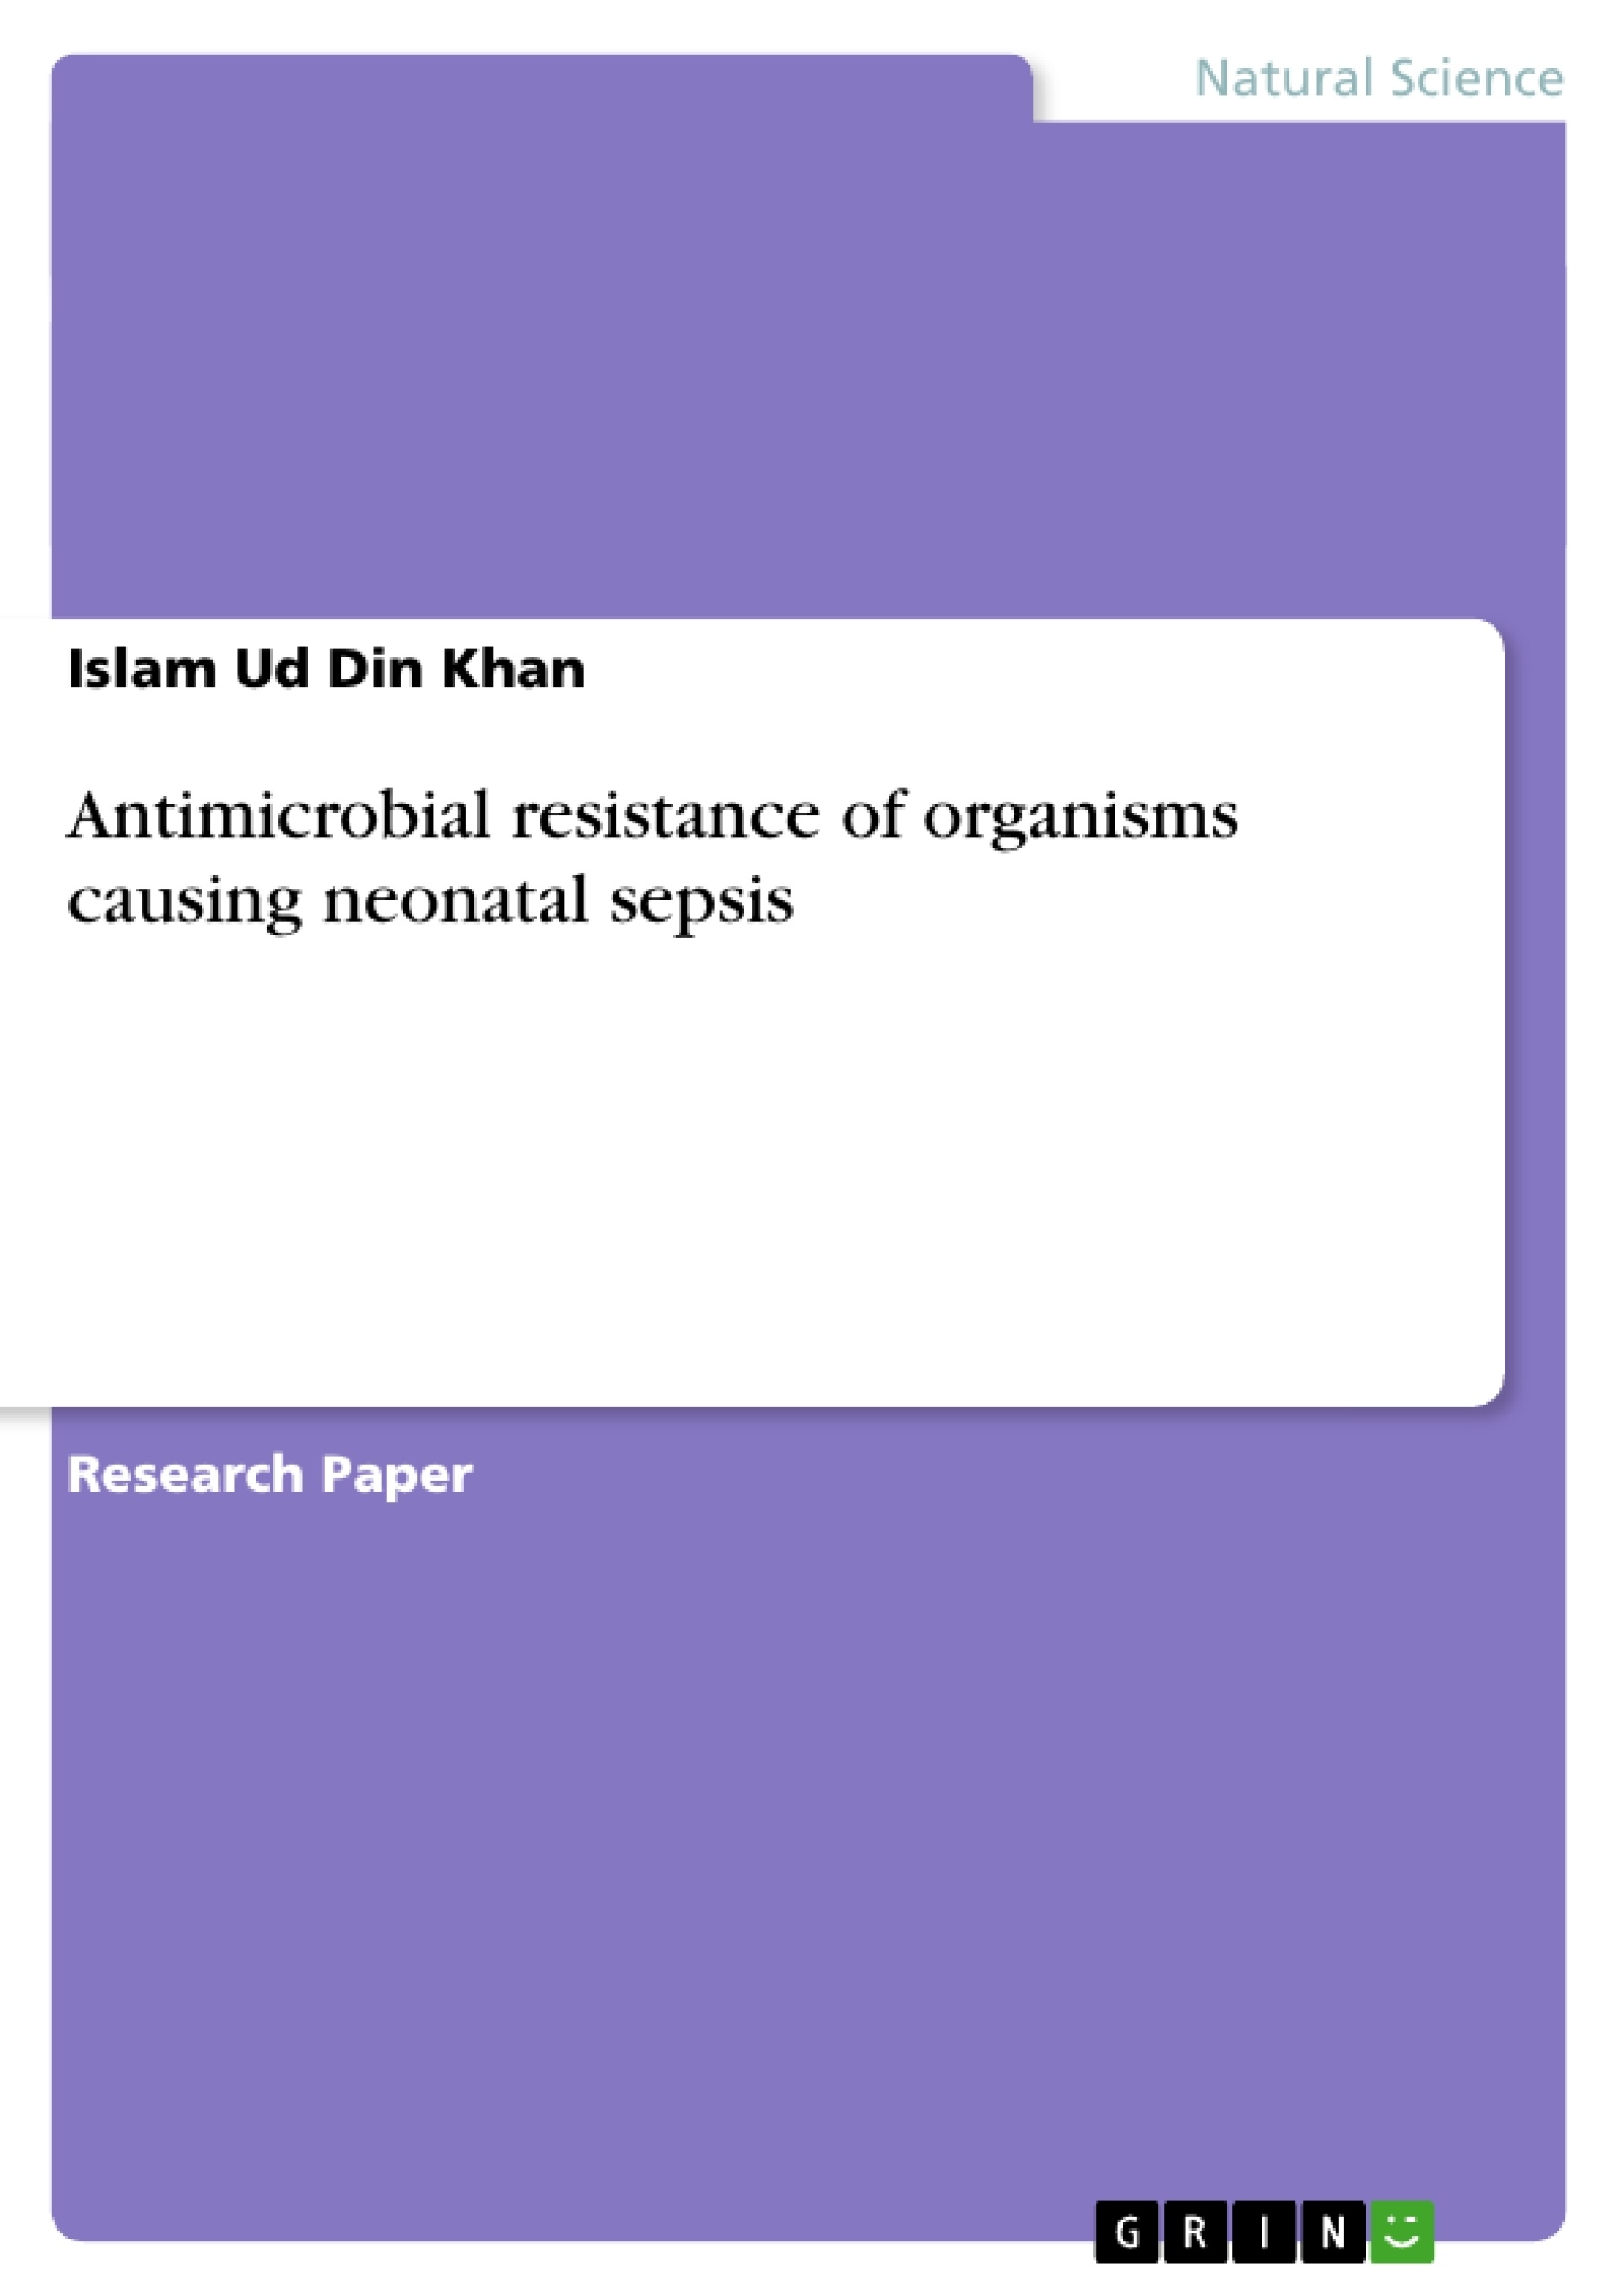 Title: Antimicrobial resistance of organisms causing neonatal sepsis